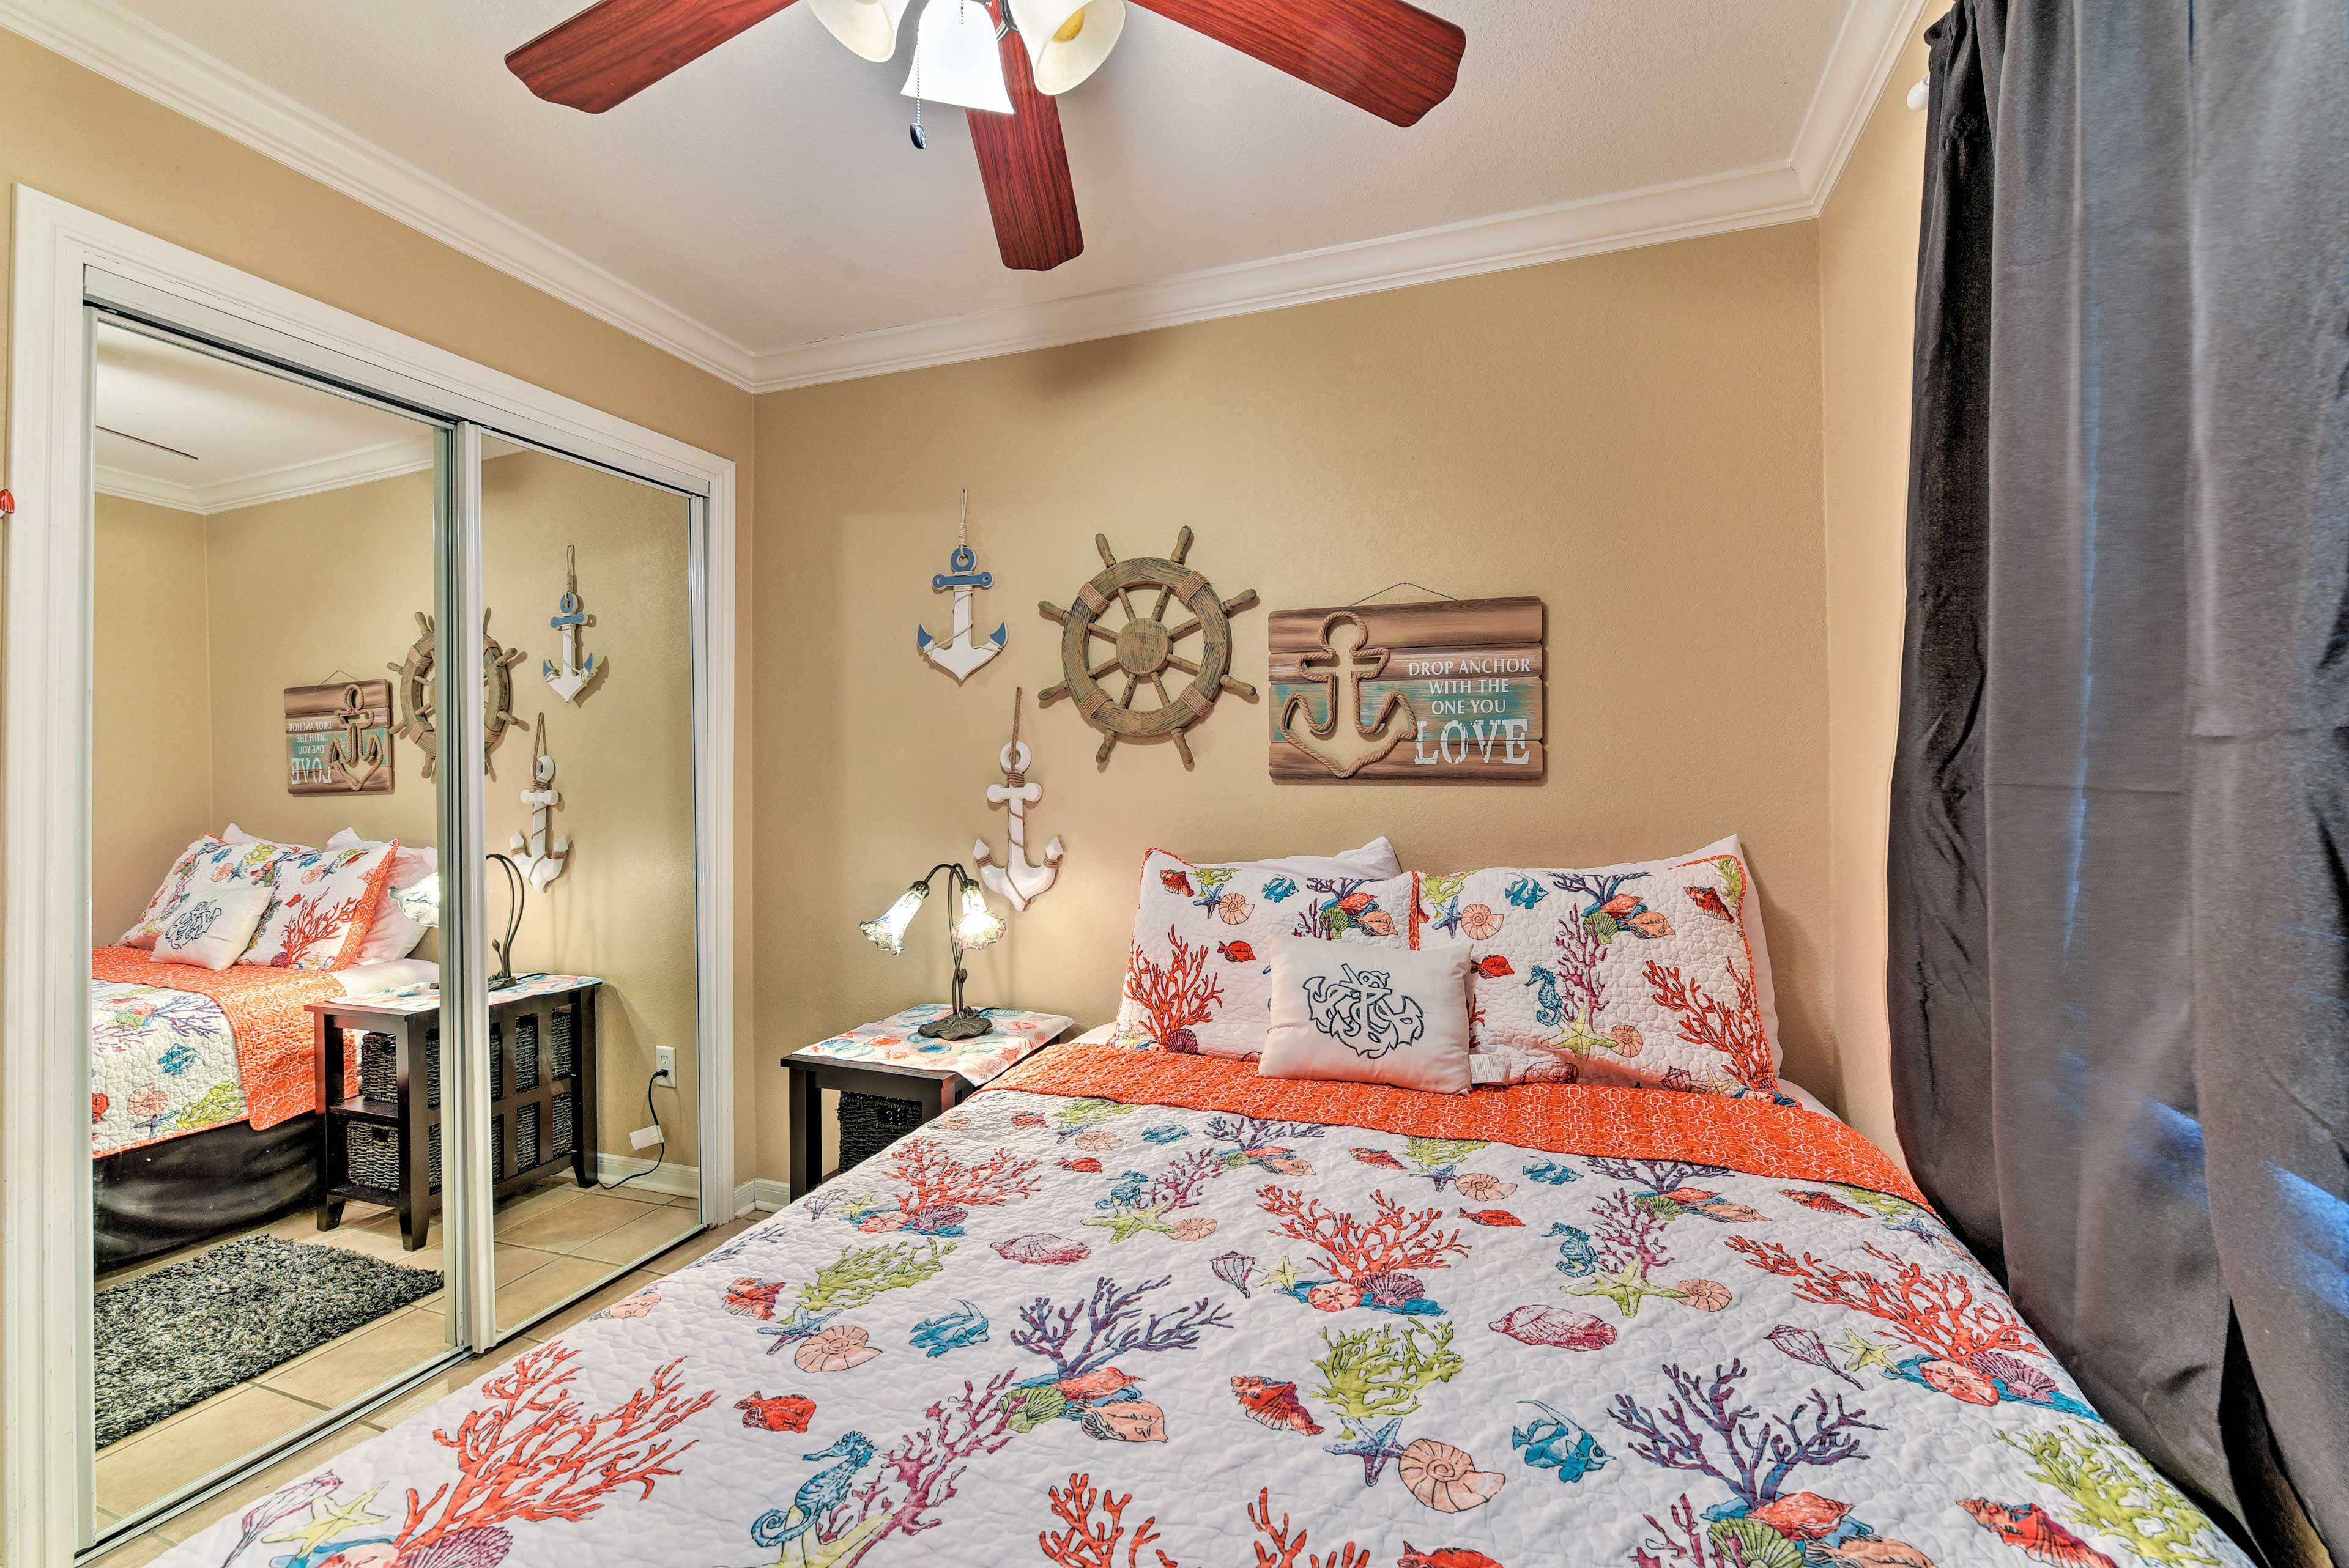 The bedroom features a queen bed, closet, and ceiling fan.